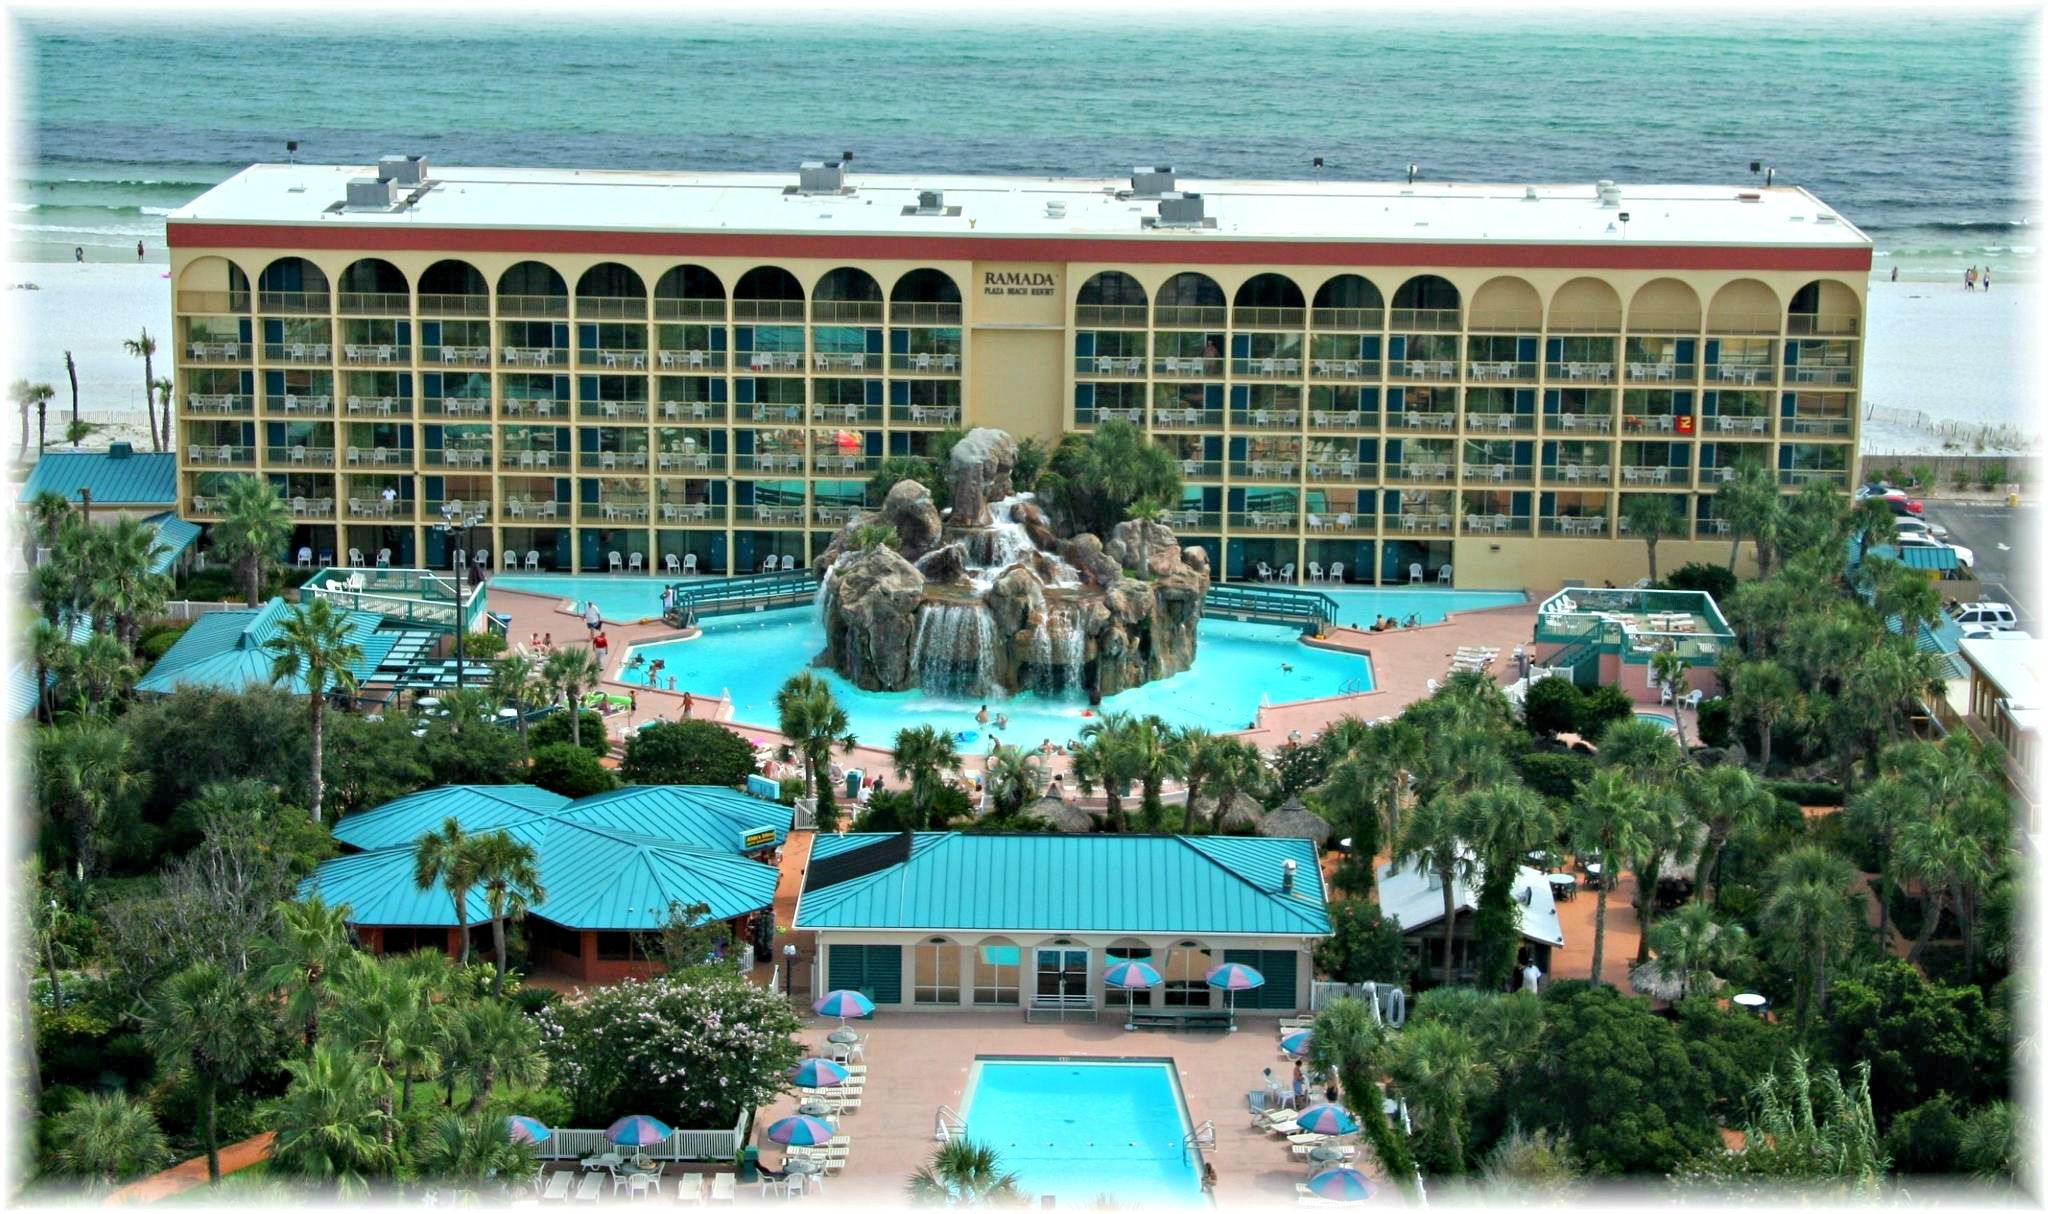 Ramada Plaza Beach Resort Hotels In Destin Florida Fort